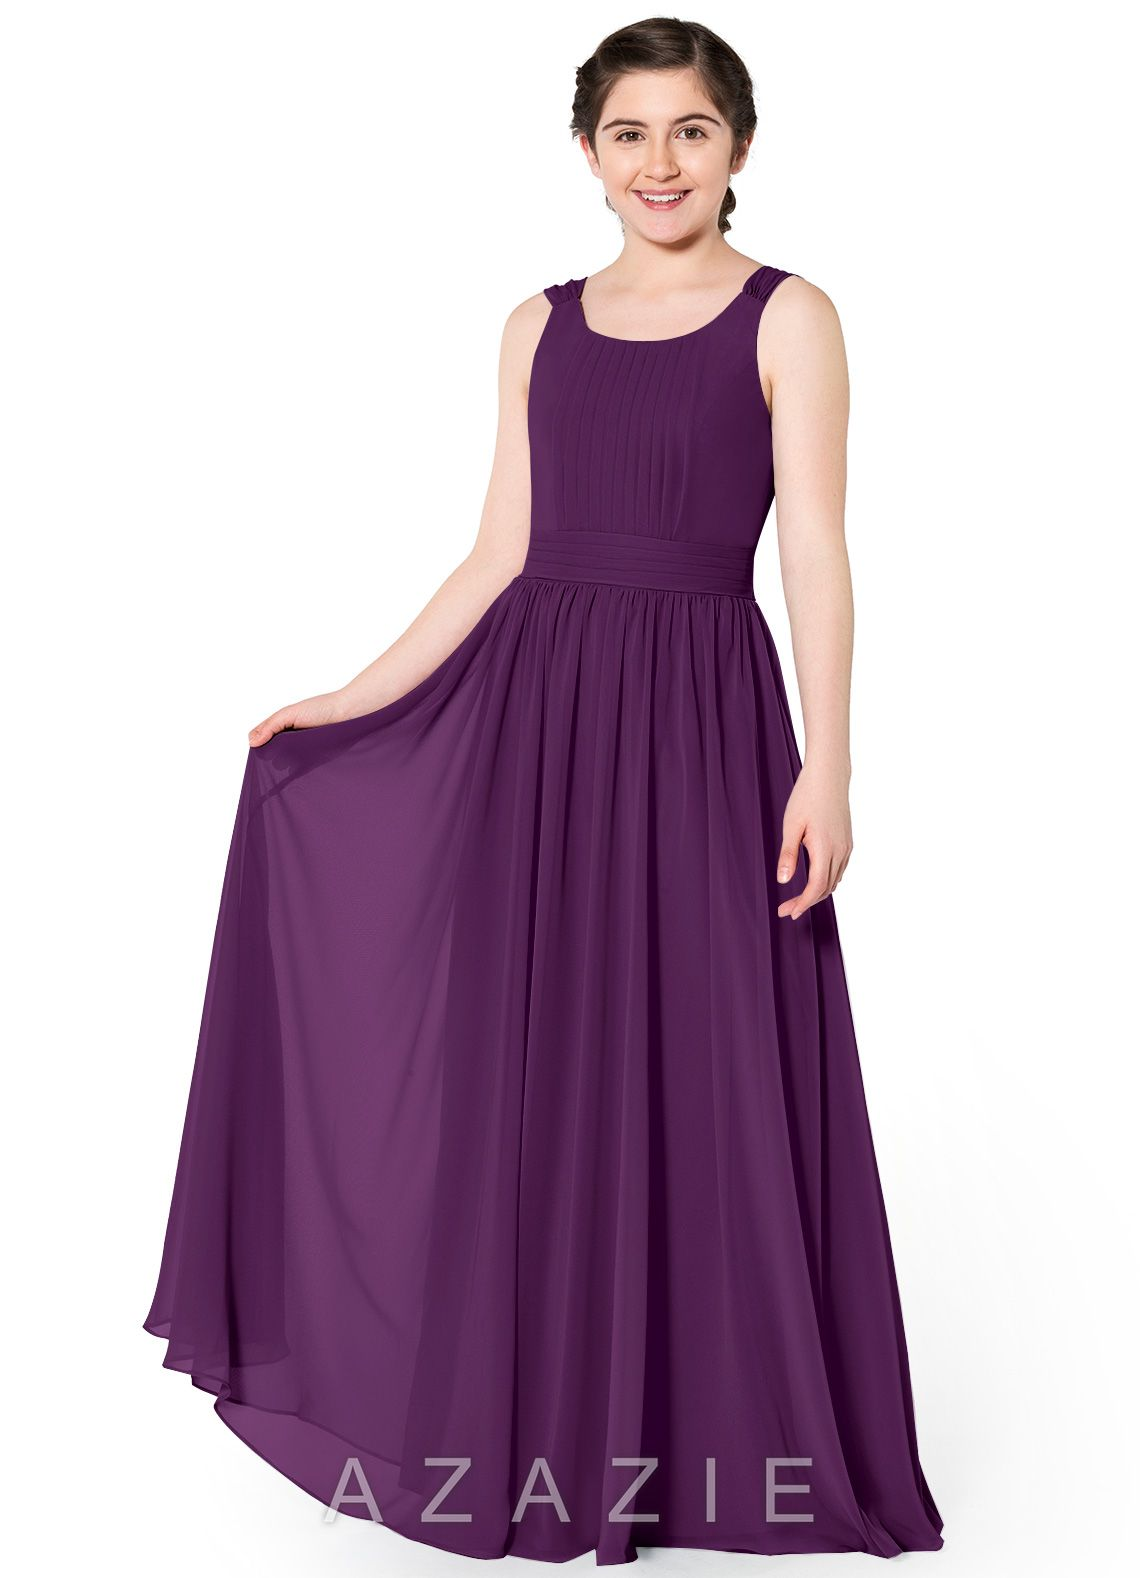 d1435d22302 Azazie Tiana JBD Junior Bridesmaid Dress